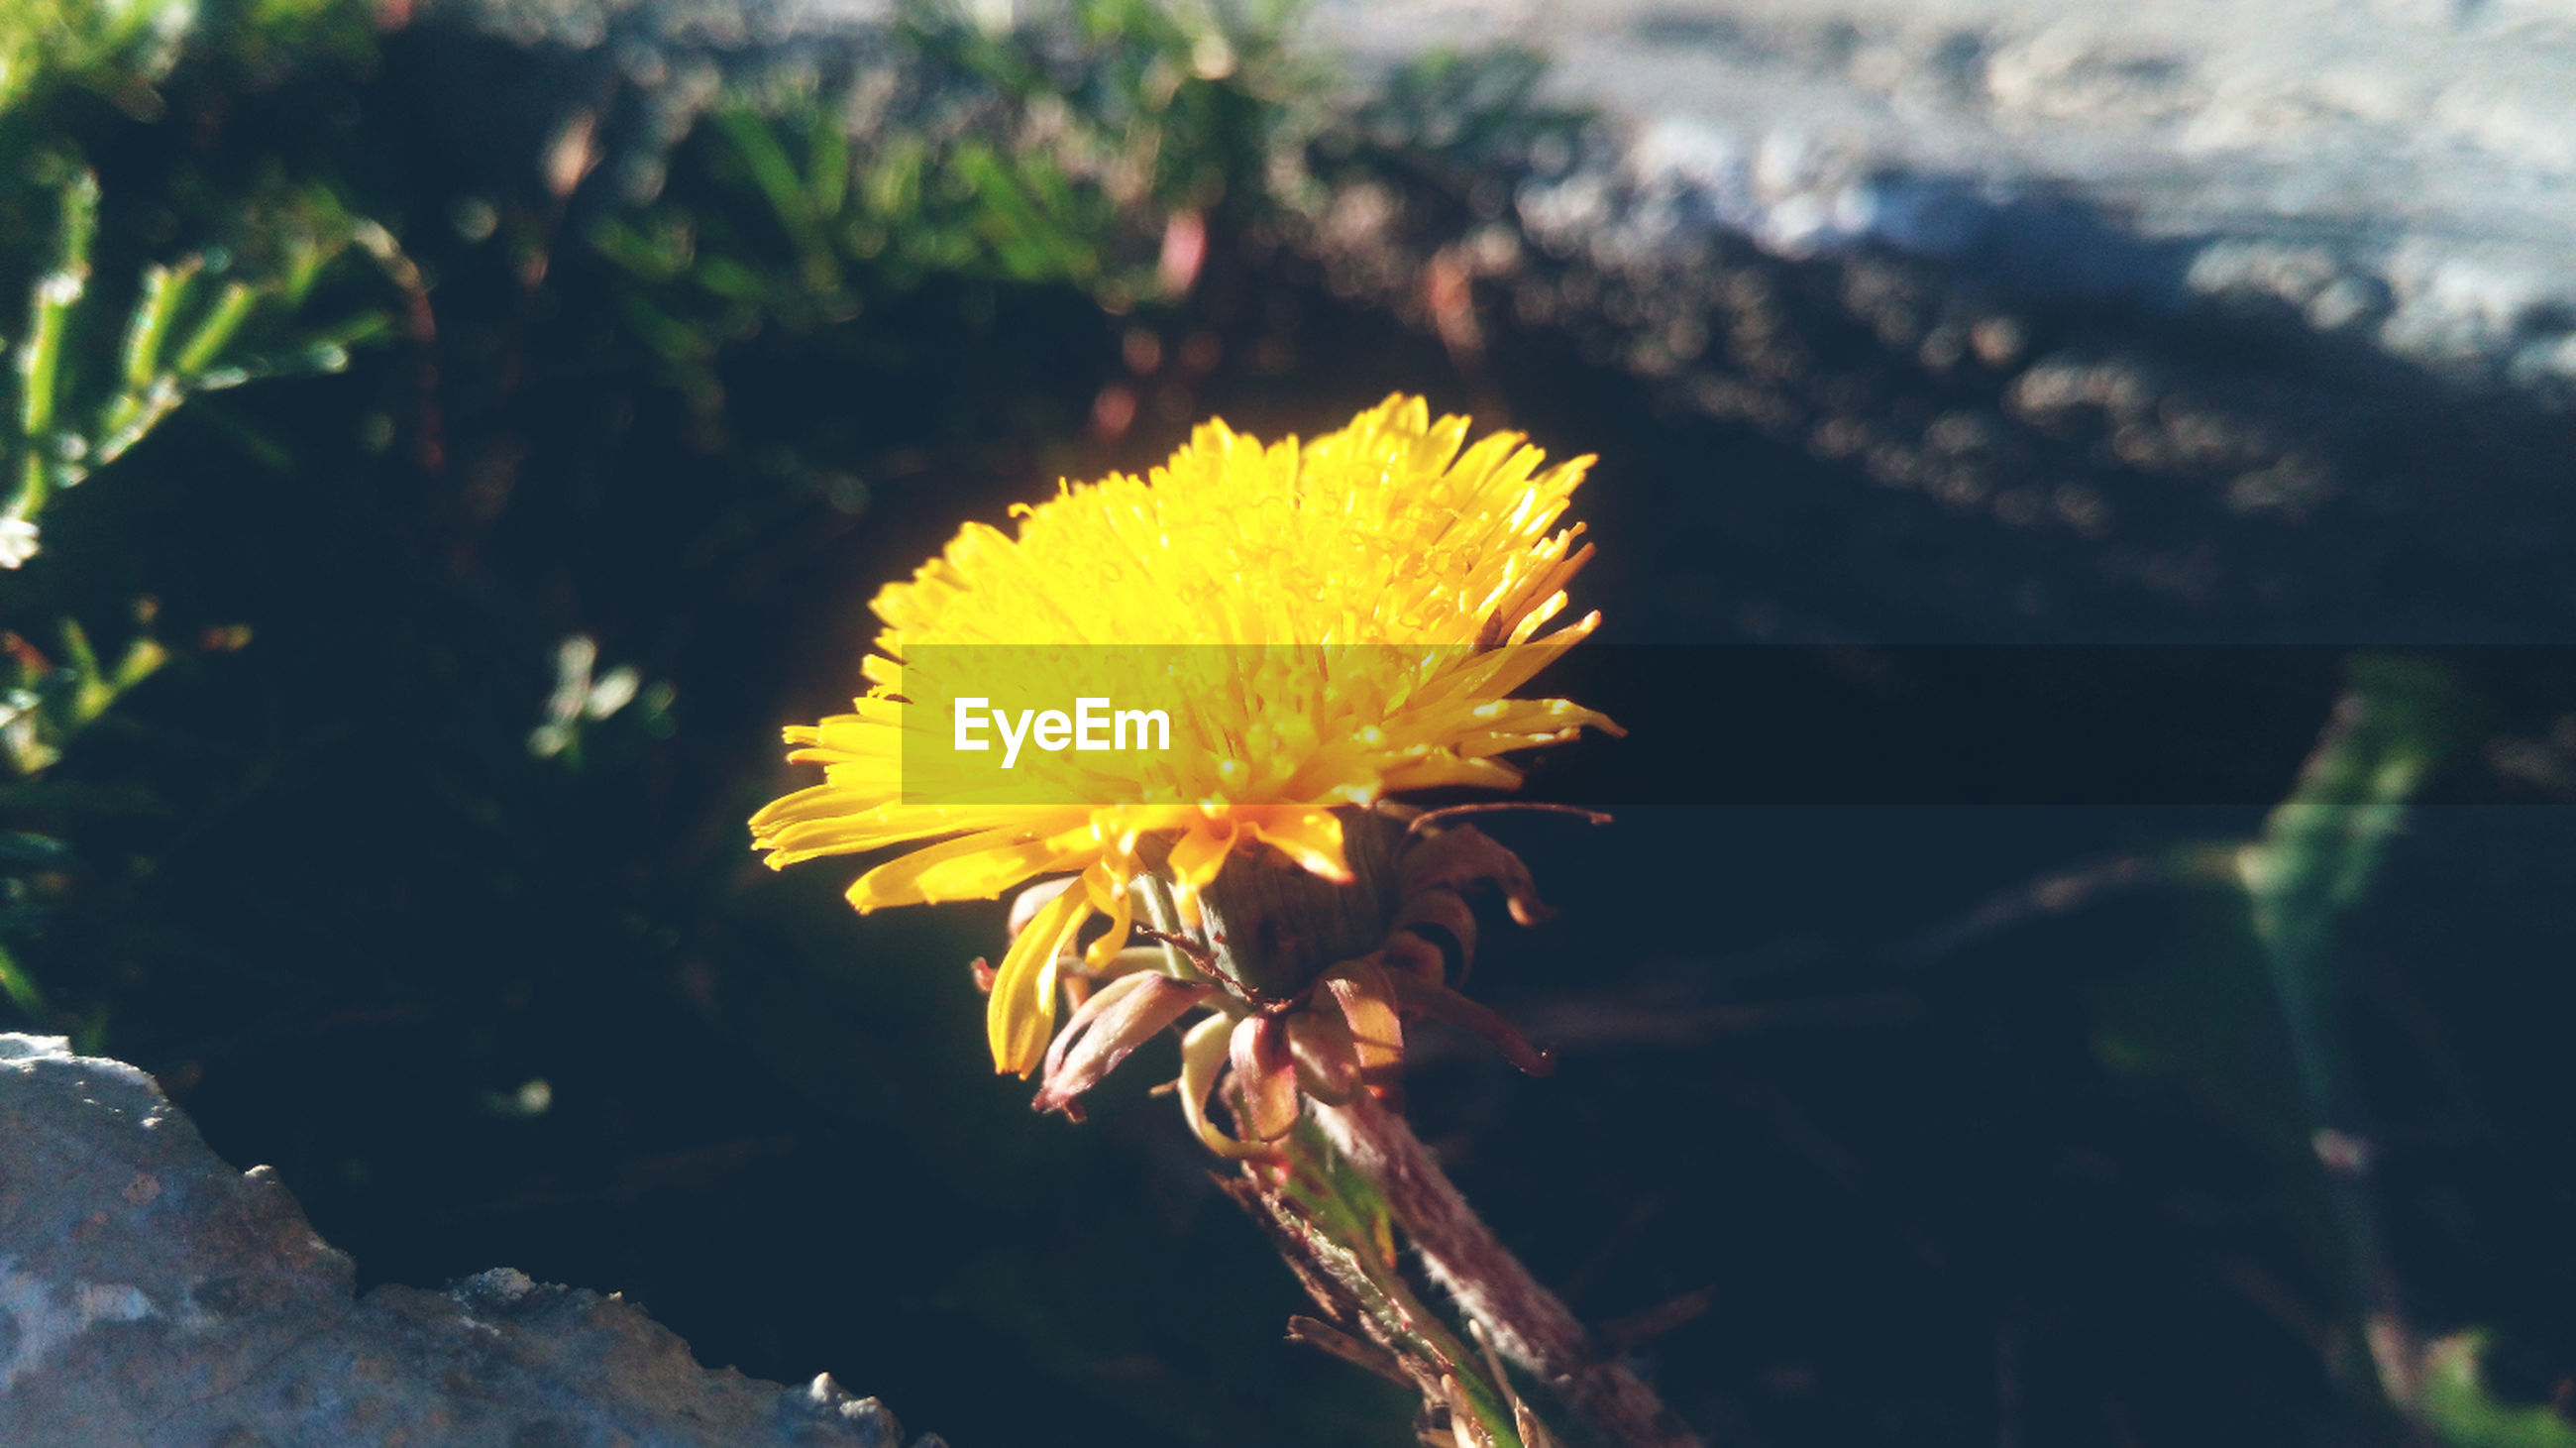 flower, fragility, yellow, freshness, growth, close-up, focus on foreground, nature, single flower, beauty in nature, flower head, plant, petal, dandelion, blooming, outdoors, day, stem, no people, selective focus